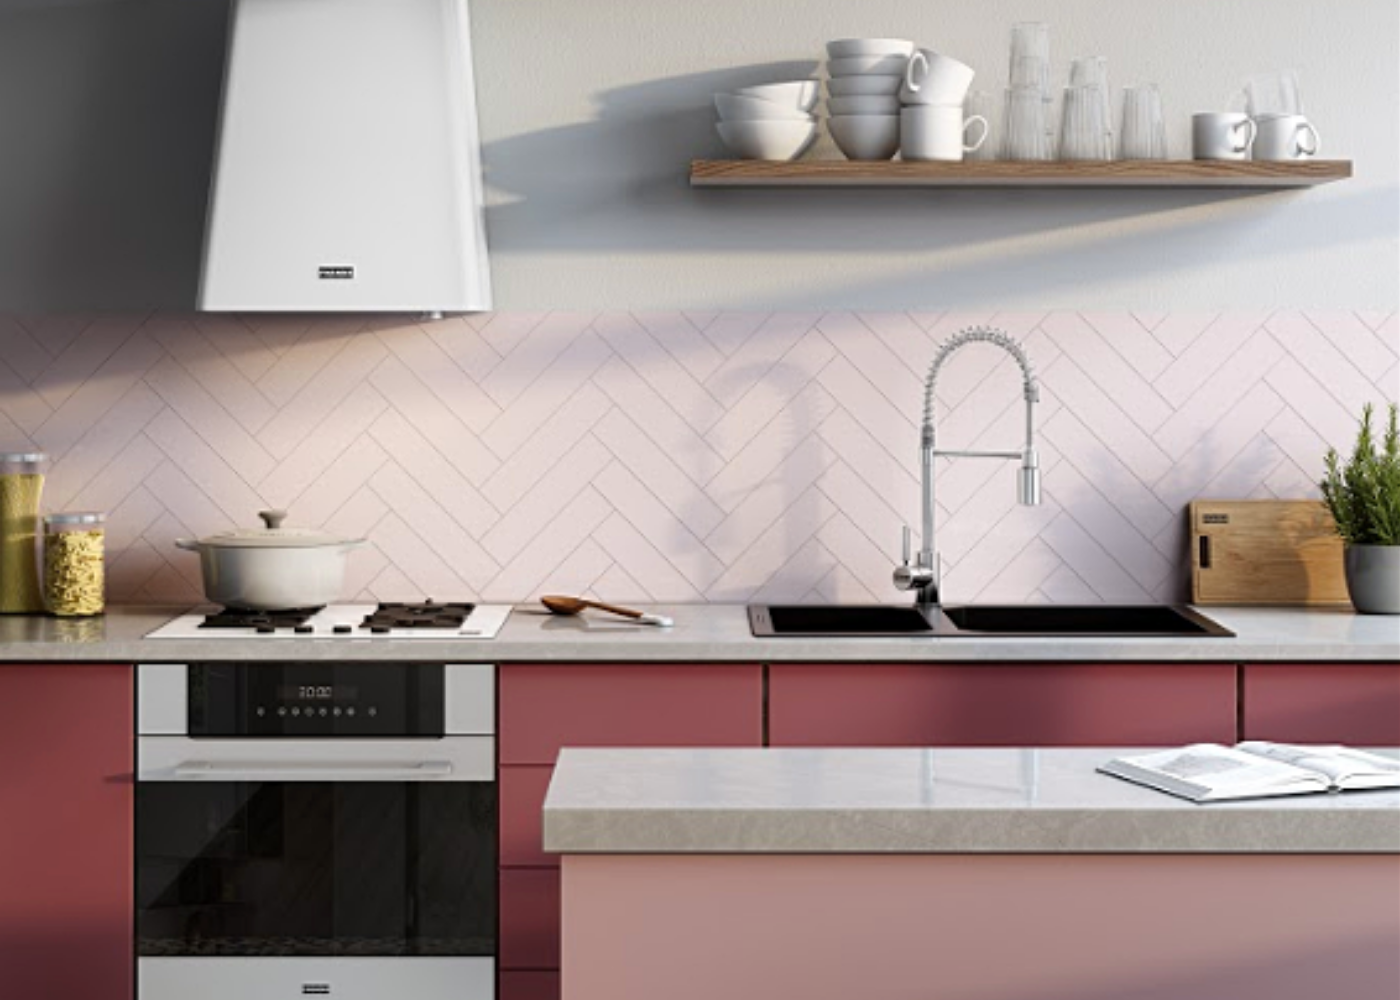 What makes an exceptional kitchen sink? Beauty, durability and hygiene